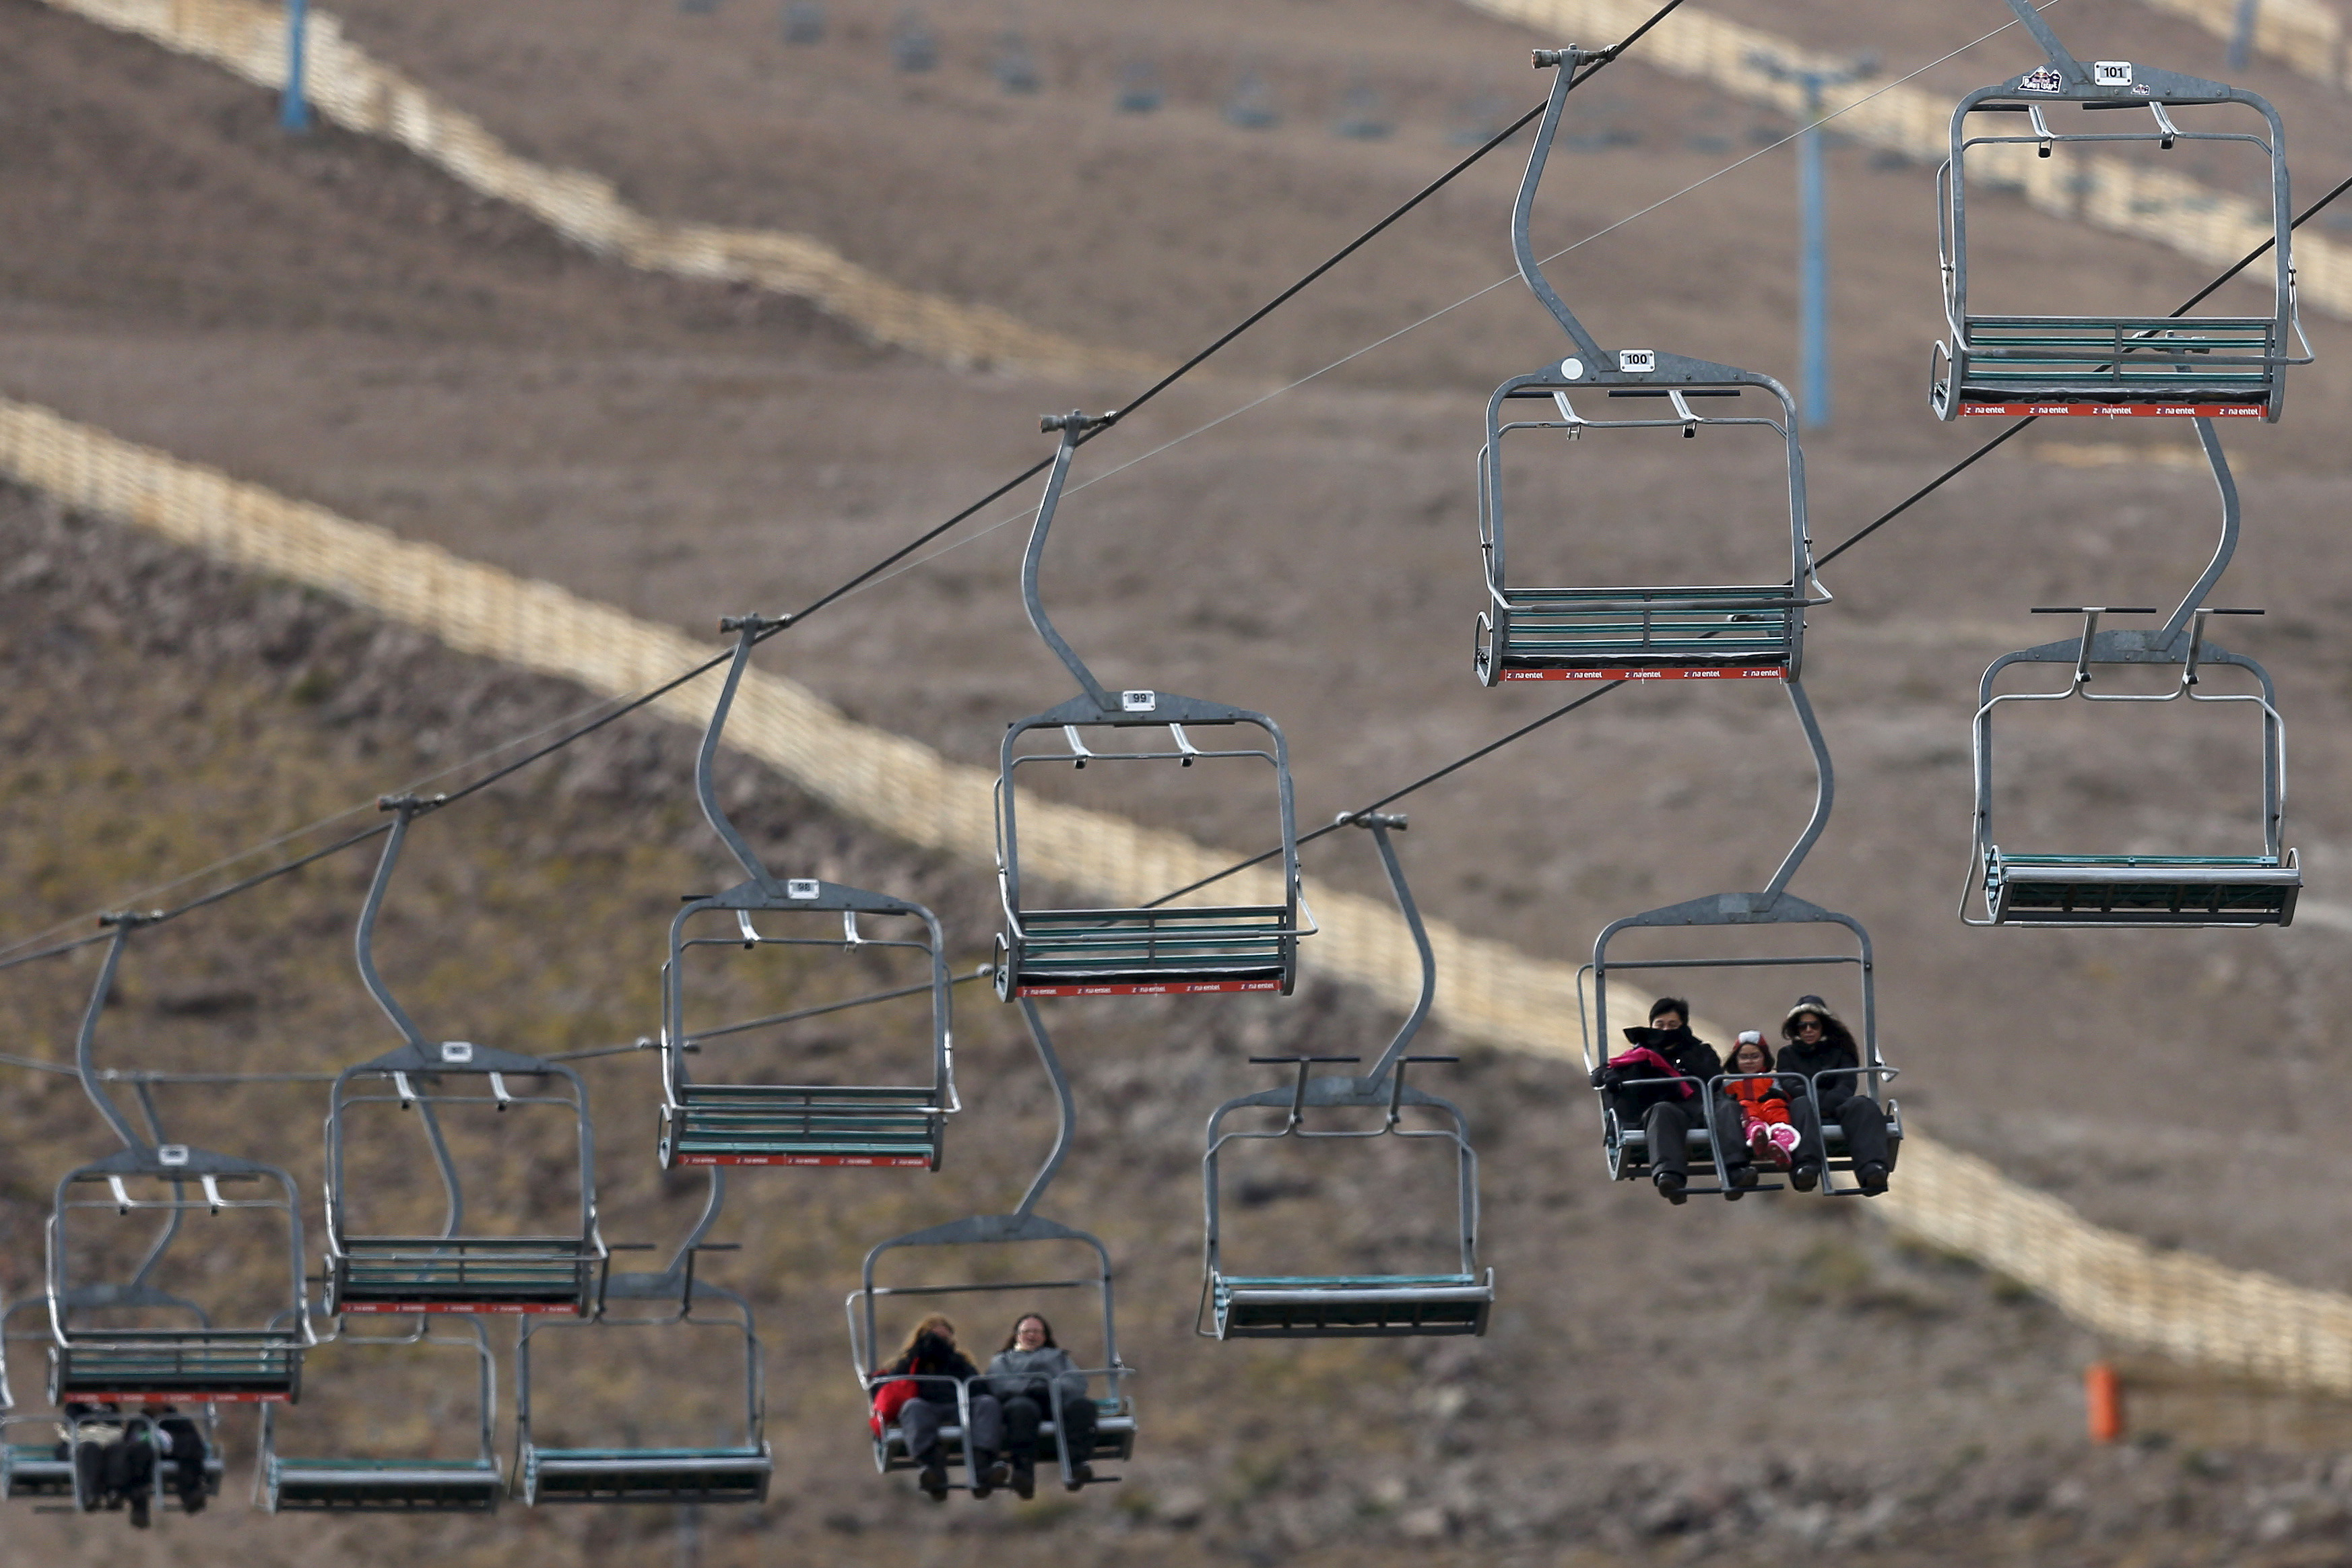 Tourists ride the chairlift at the El Colorado ski centre at Los Andes Mountain range, near Santiago, Chile, July 1, 2015.